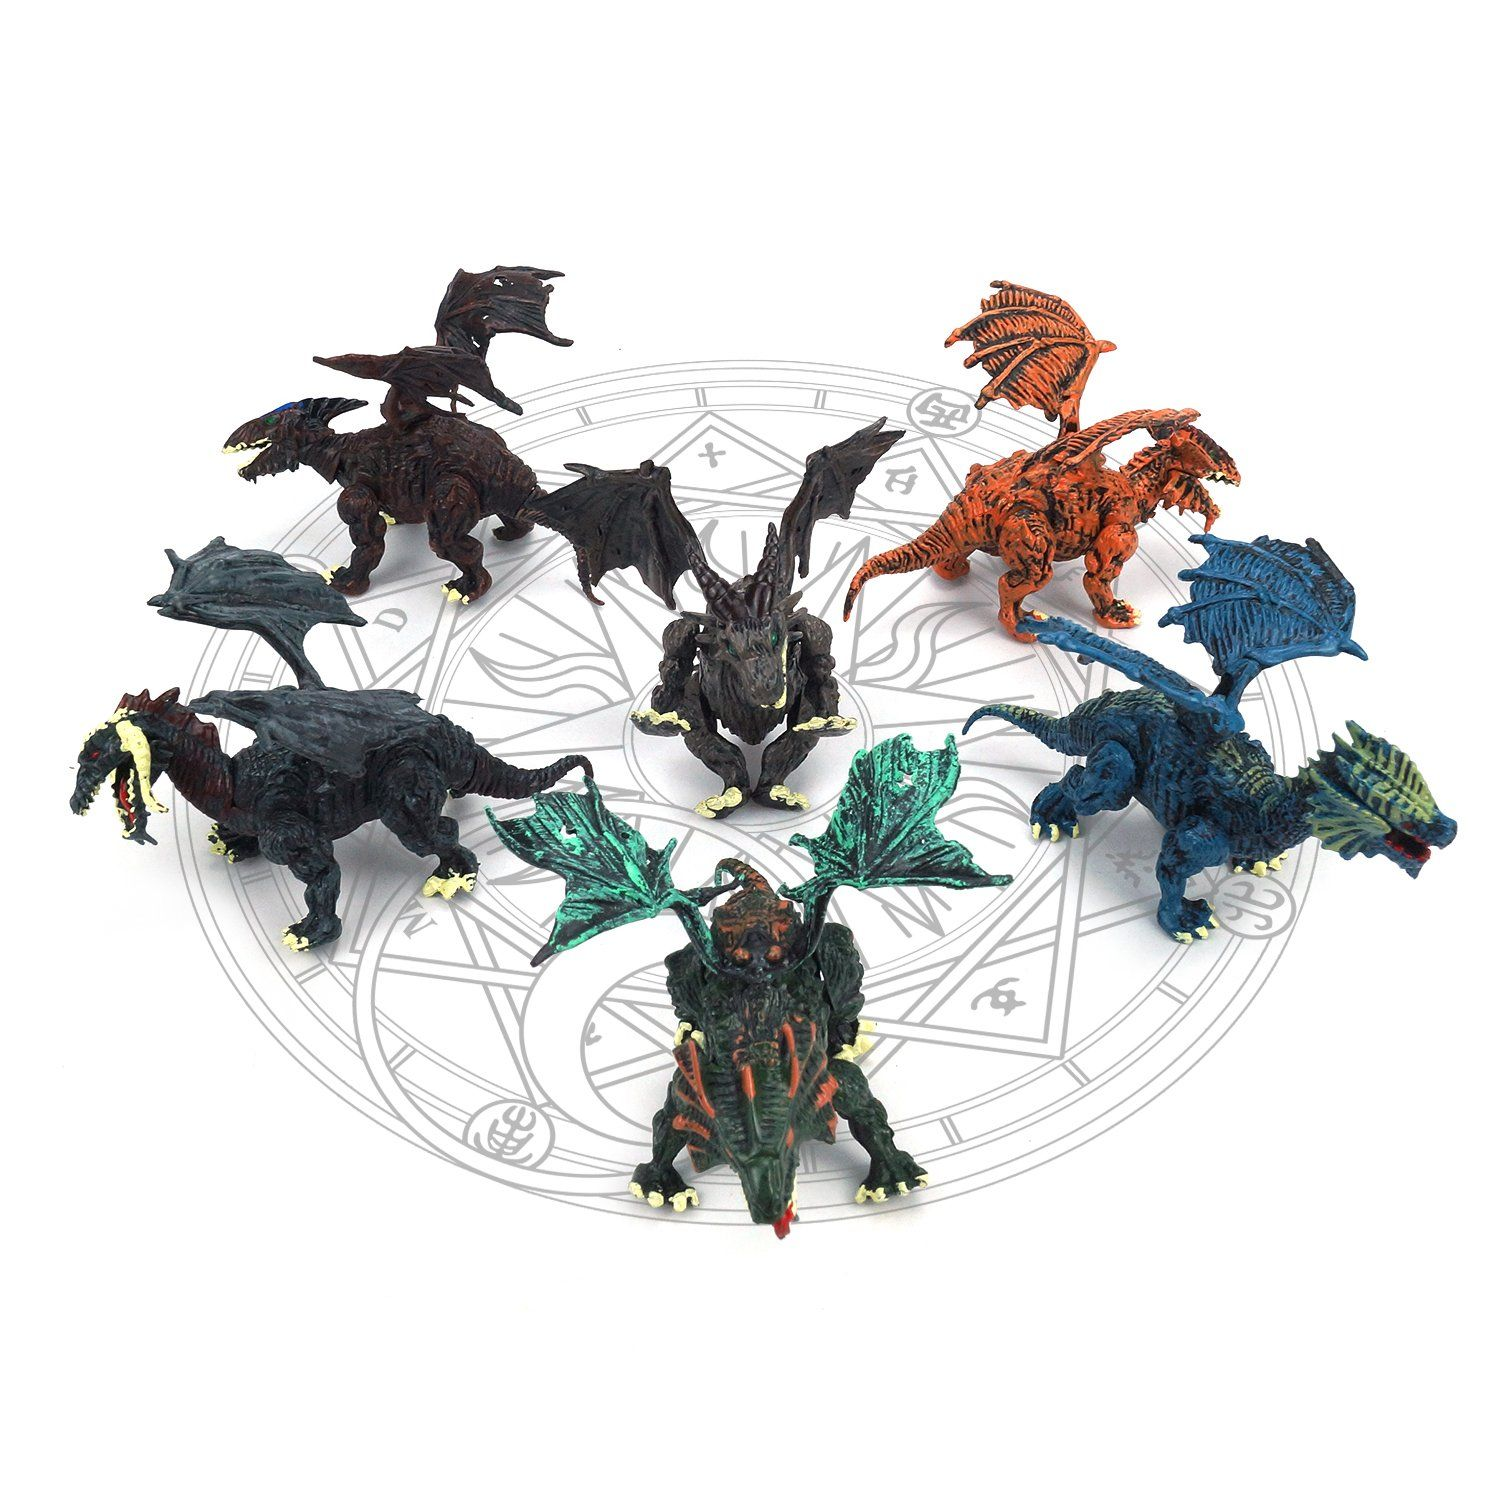 Dragon Toys Dragon Figures for Toddler Kids set of 6 Best take